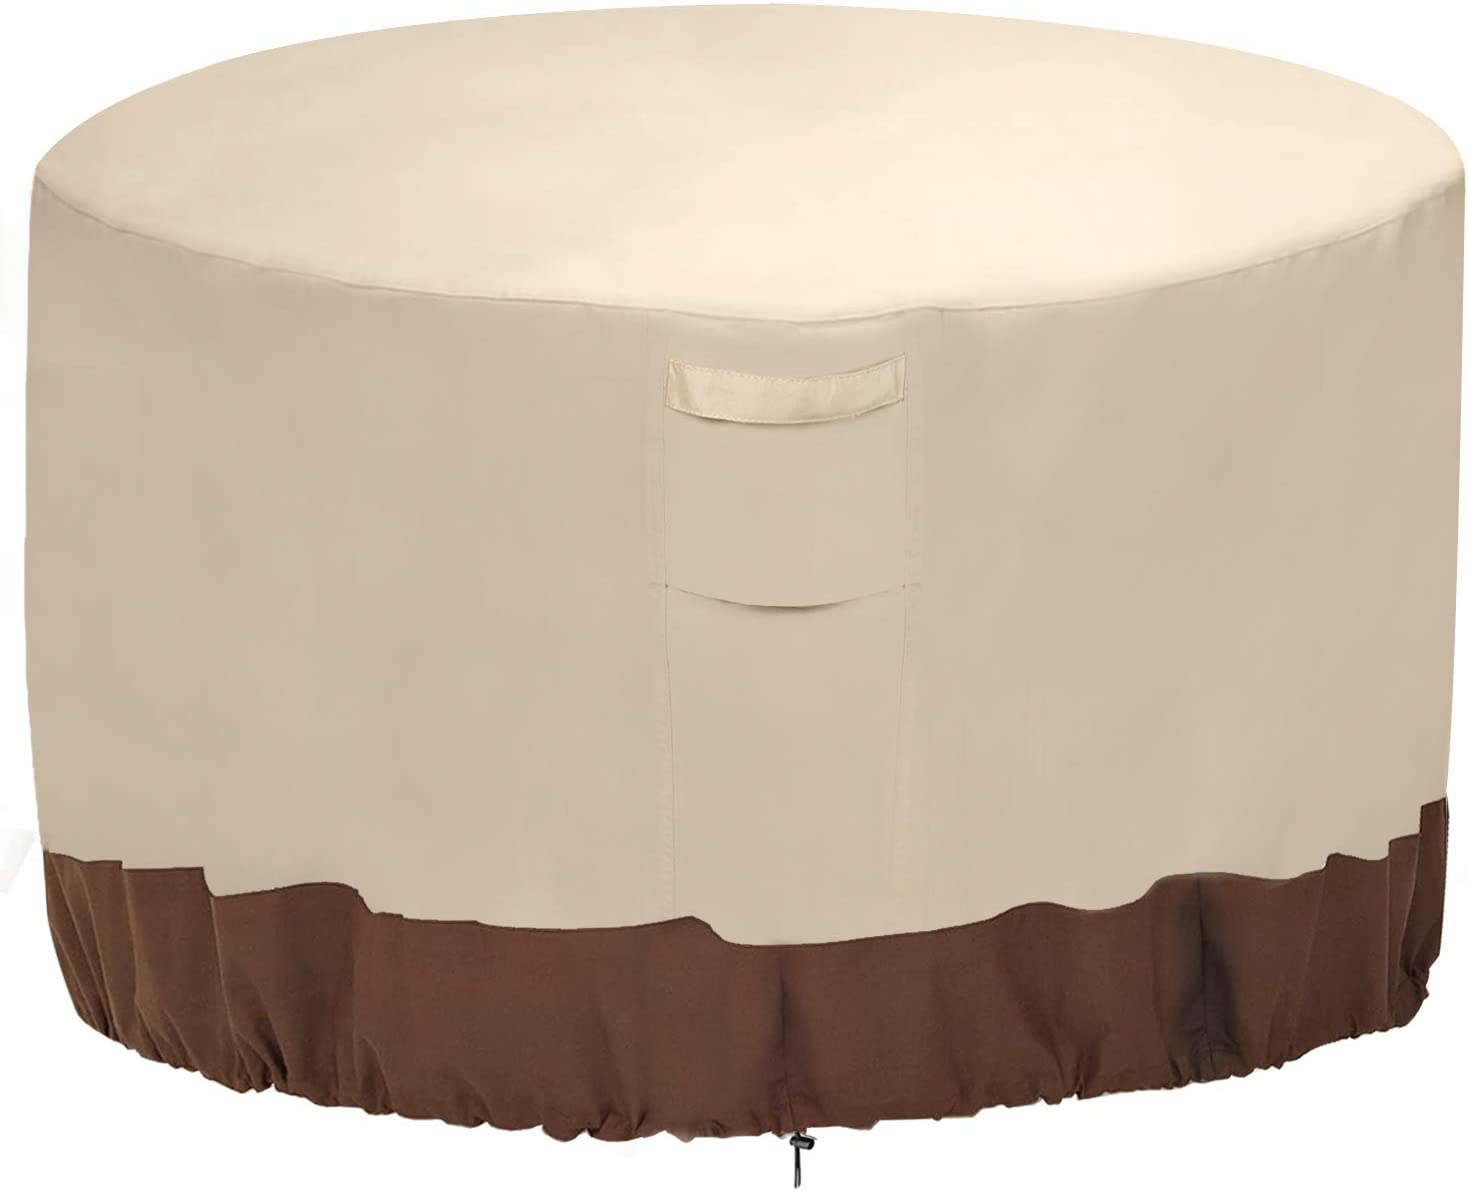 Vailge Fire Pit Cover 100% Patio Bowl Waterproof Cove Round Store sale